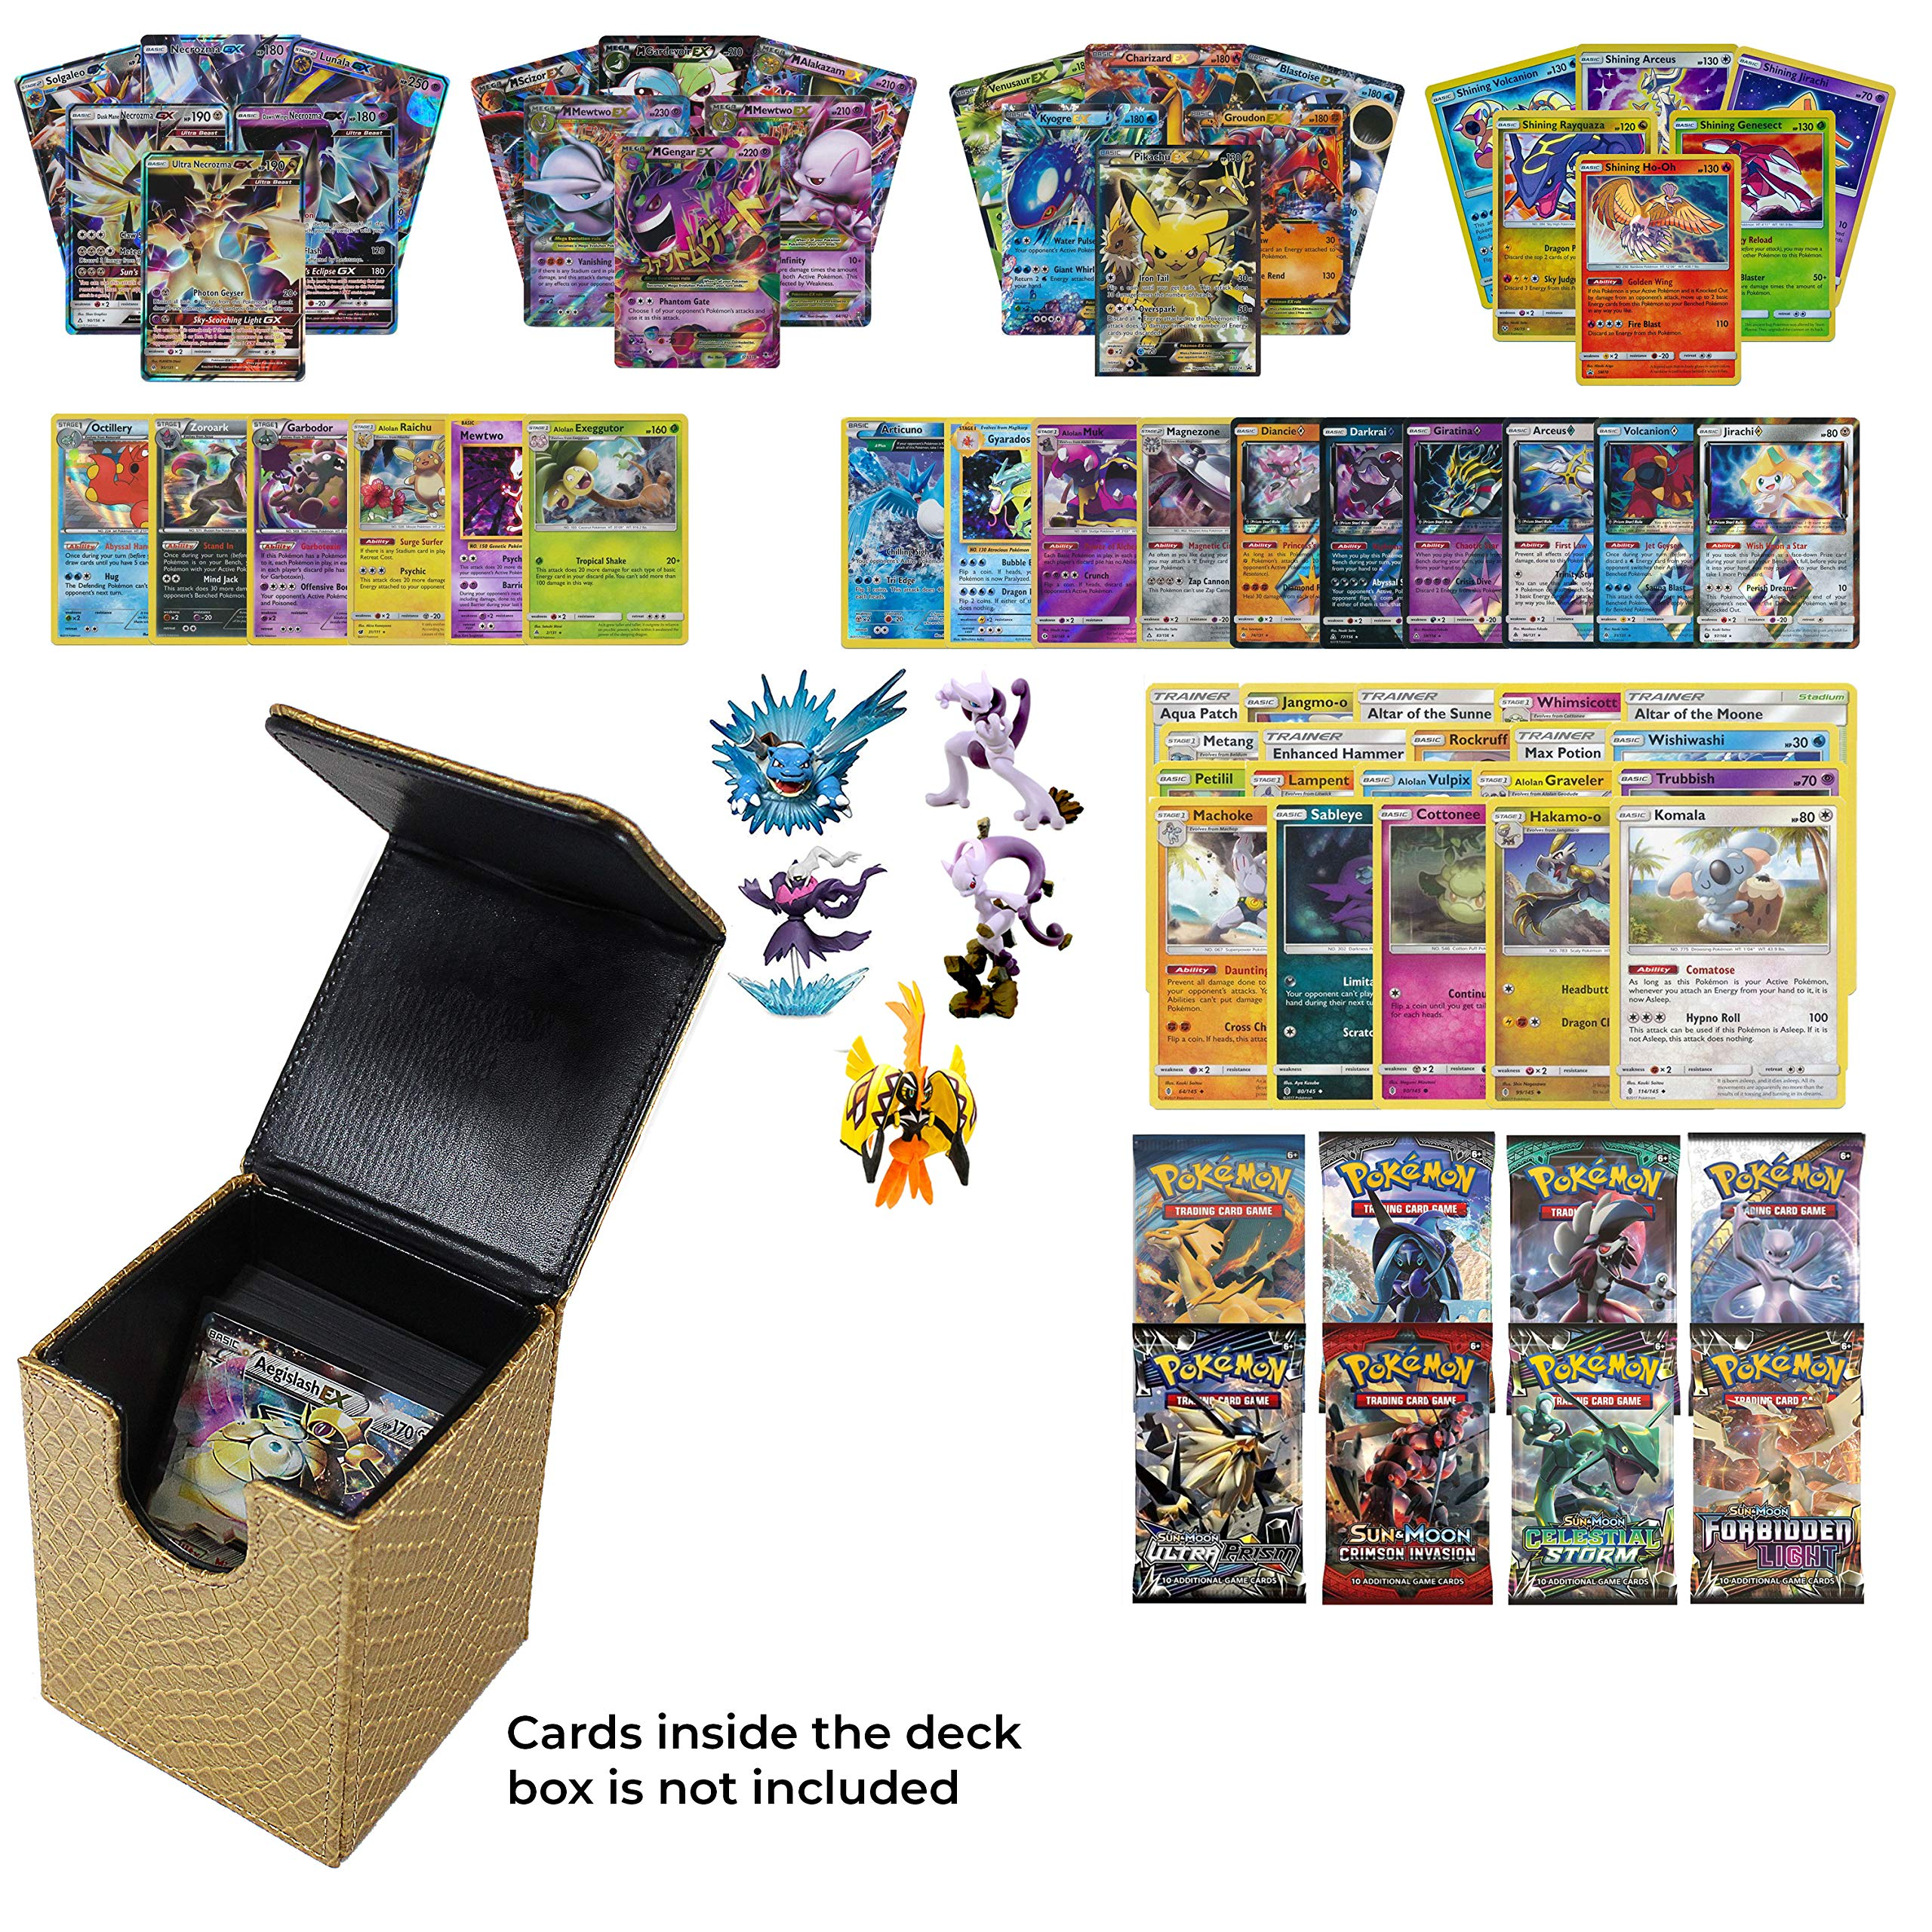 Playoly Pokemon Premium Collection 100 Cards with GX Mega EX Shining Holo 10 Rares 4 Booster Pack- 1 Gold Dragonhide Deck Box and Figure